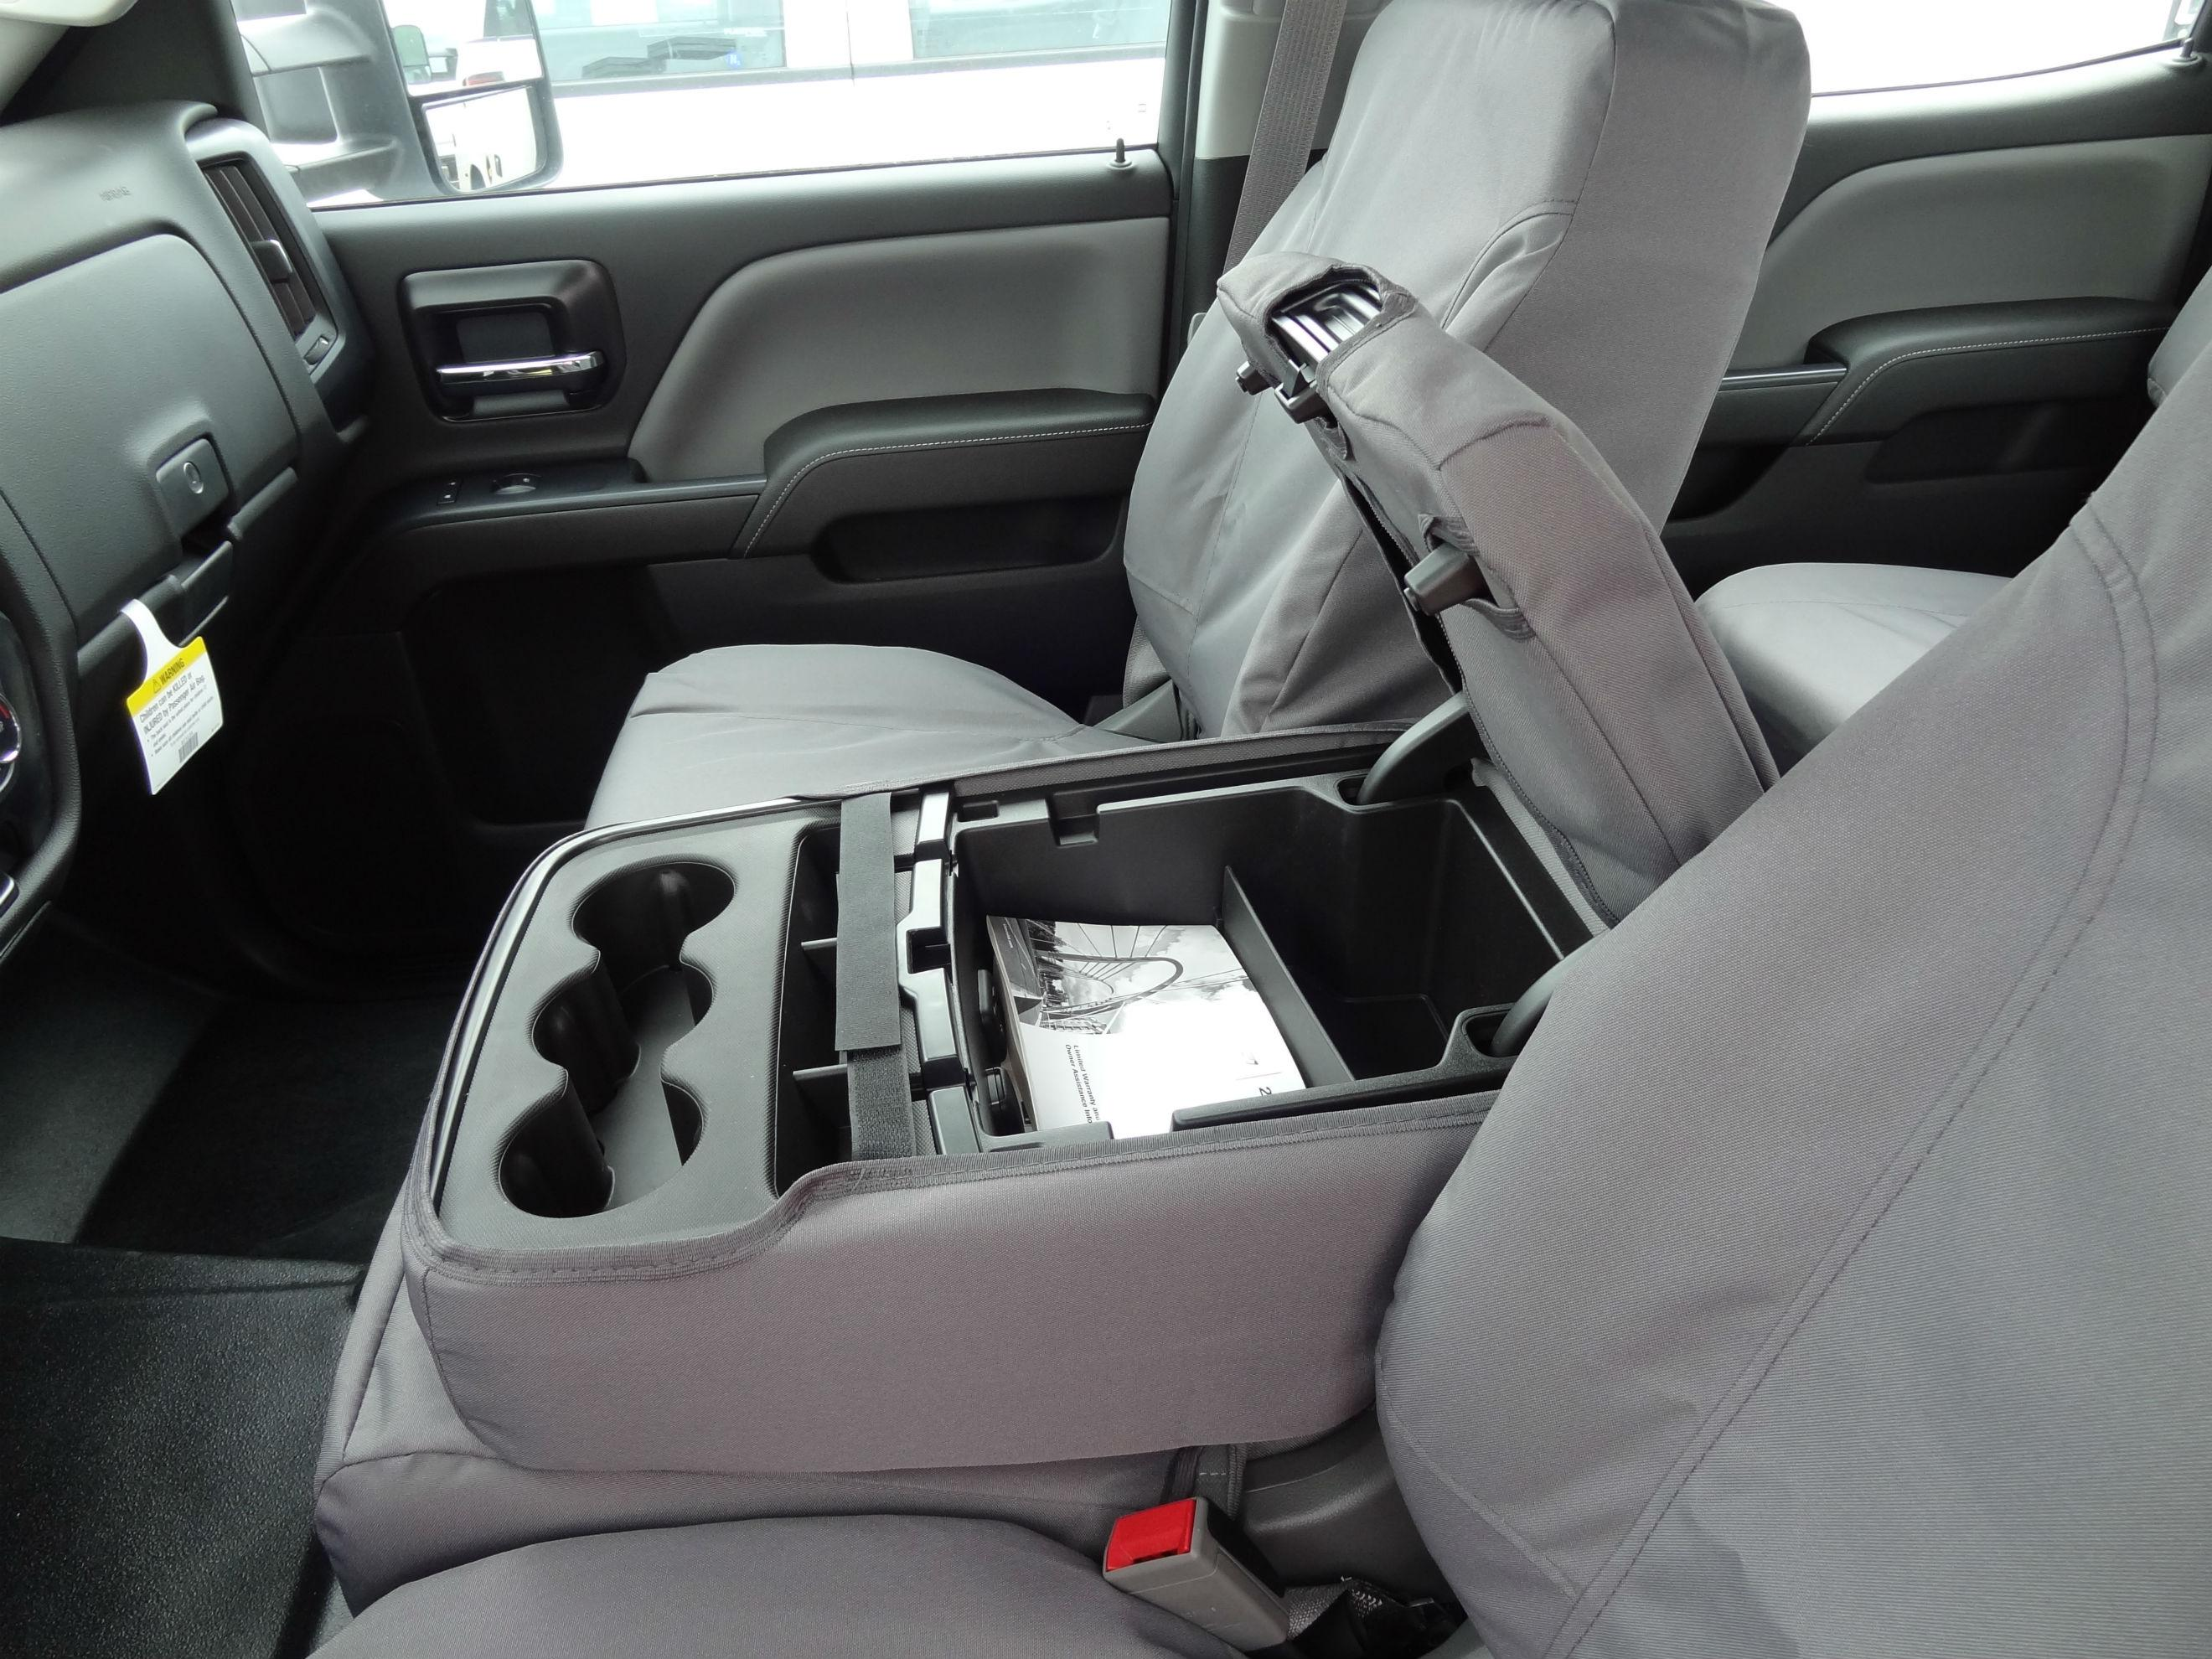 Phenomenal 2014 2019 Chevy Silverado Front 40 20 40 Split Bench Seat Machost Co Dining Chair Design Ideas Machostcouk